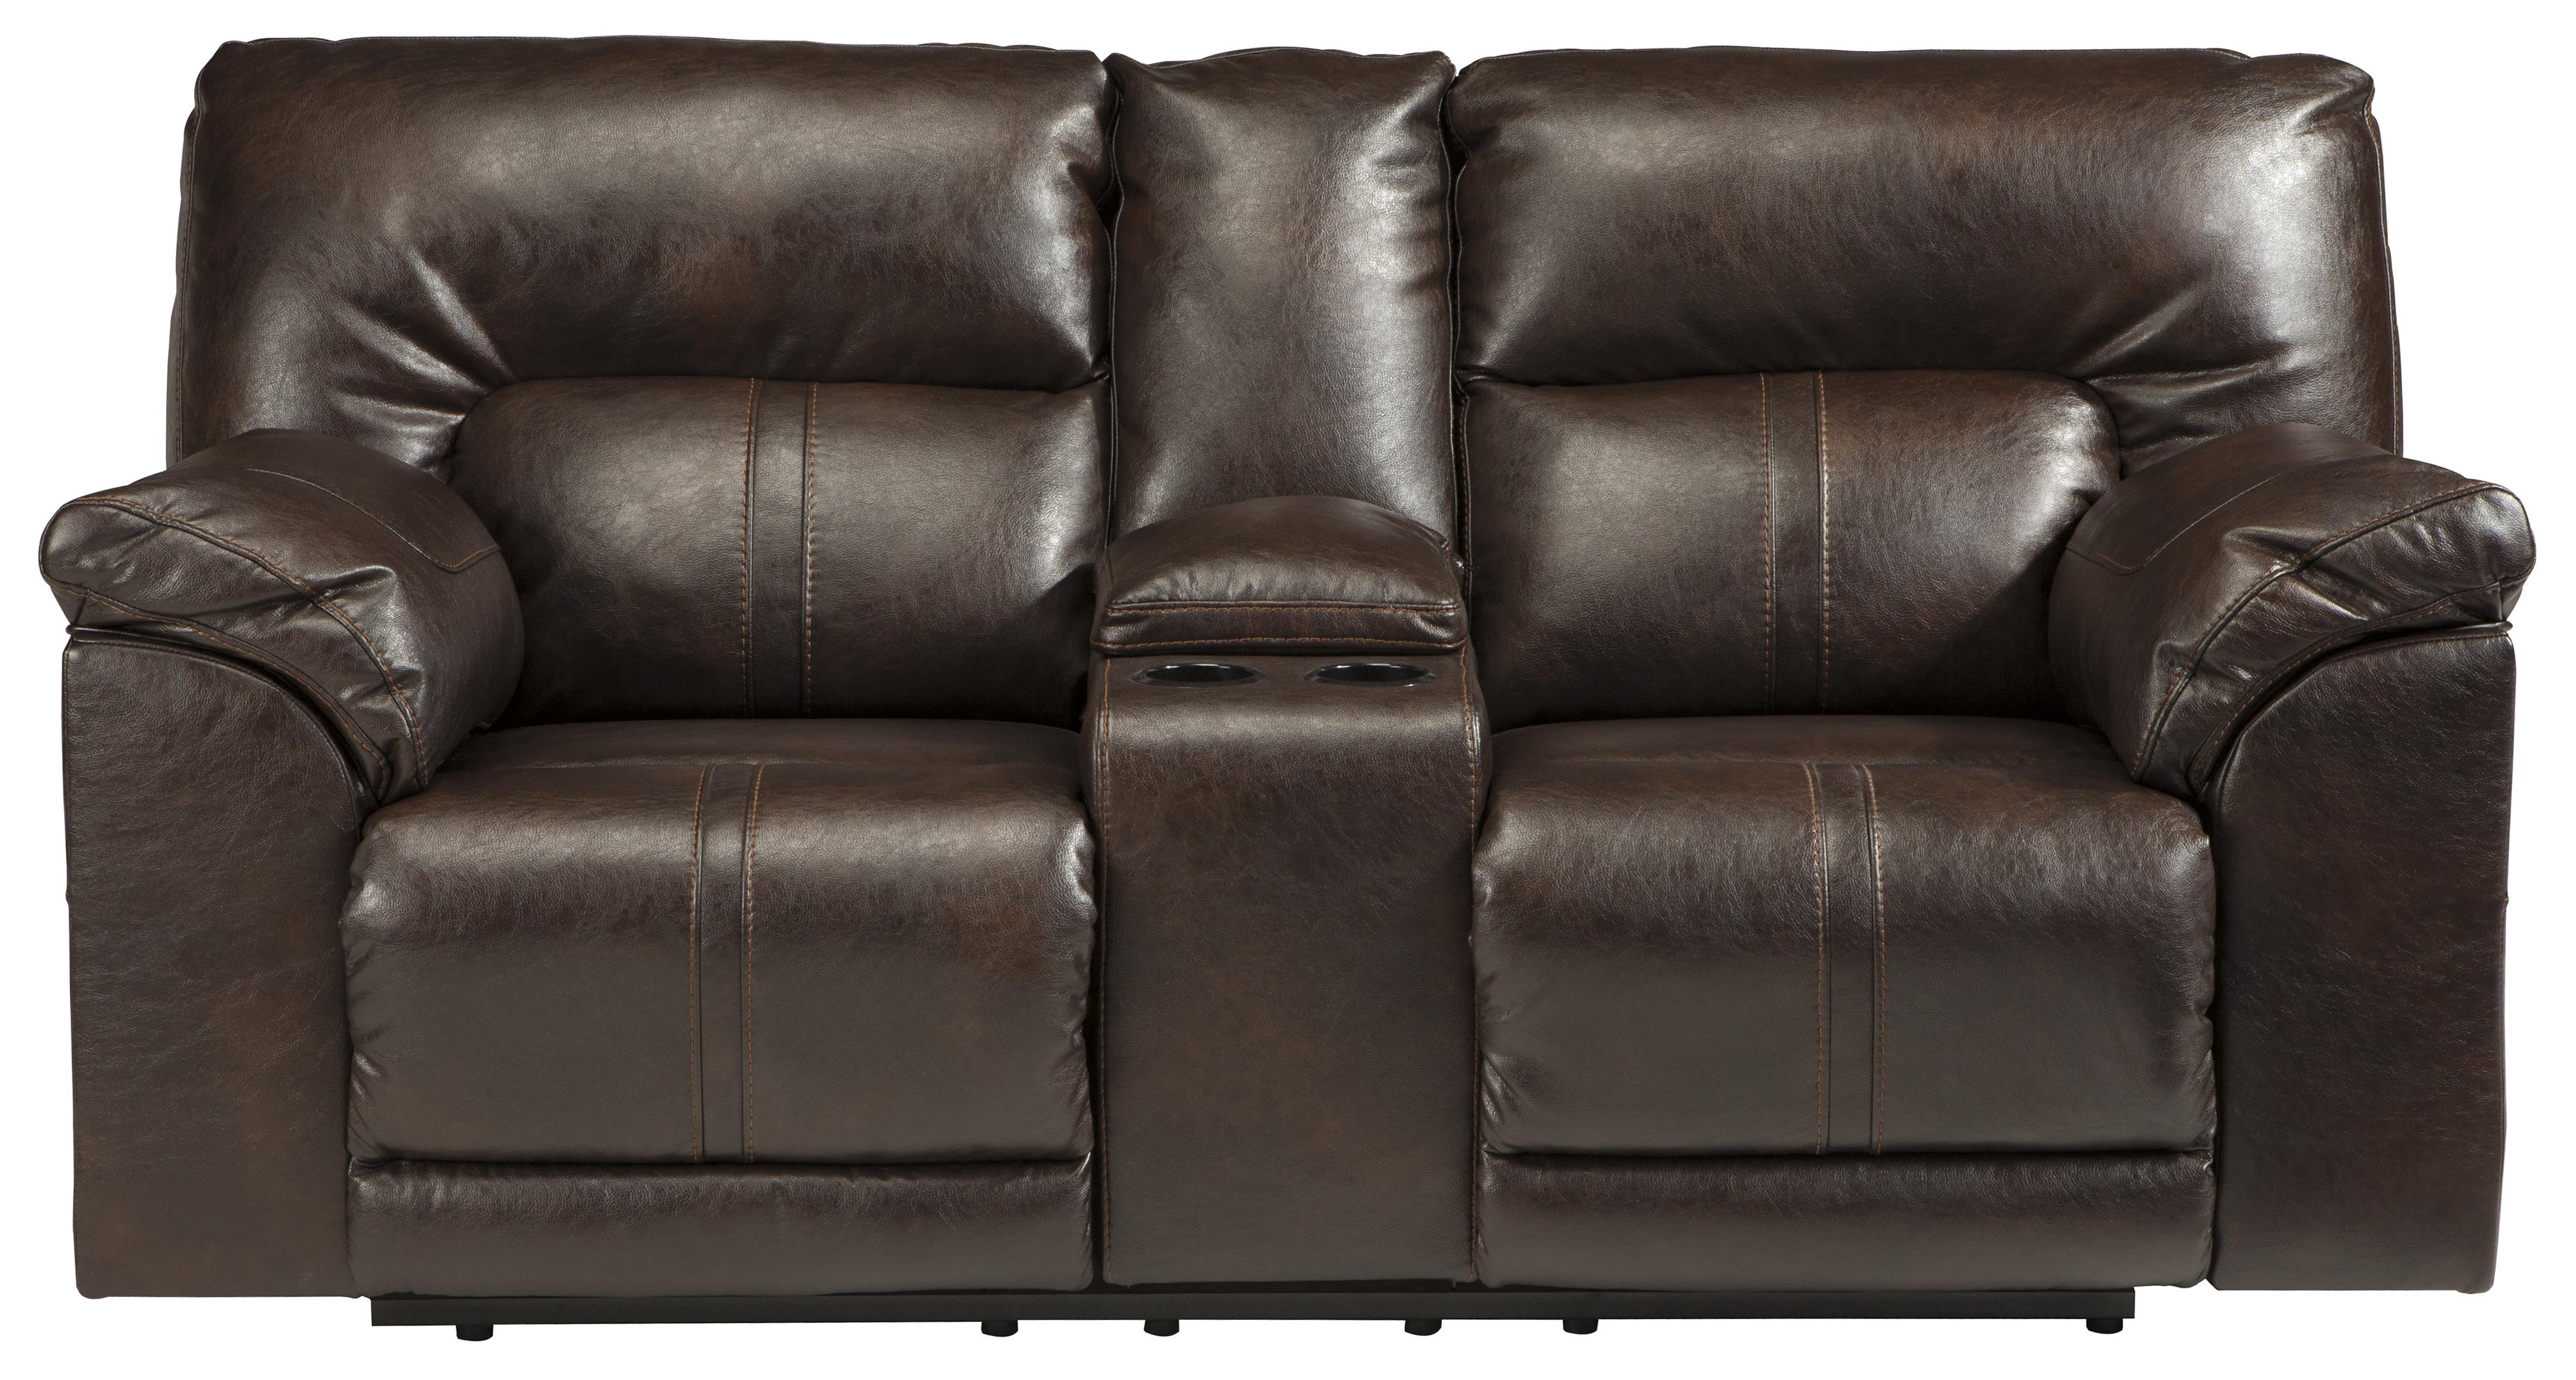 spartan sofa leather chesterfield austin tx benchcraft 4730194 double reclining loveseat w